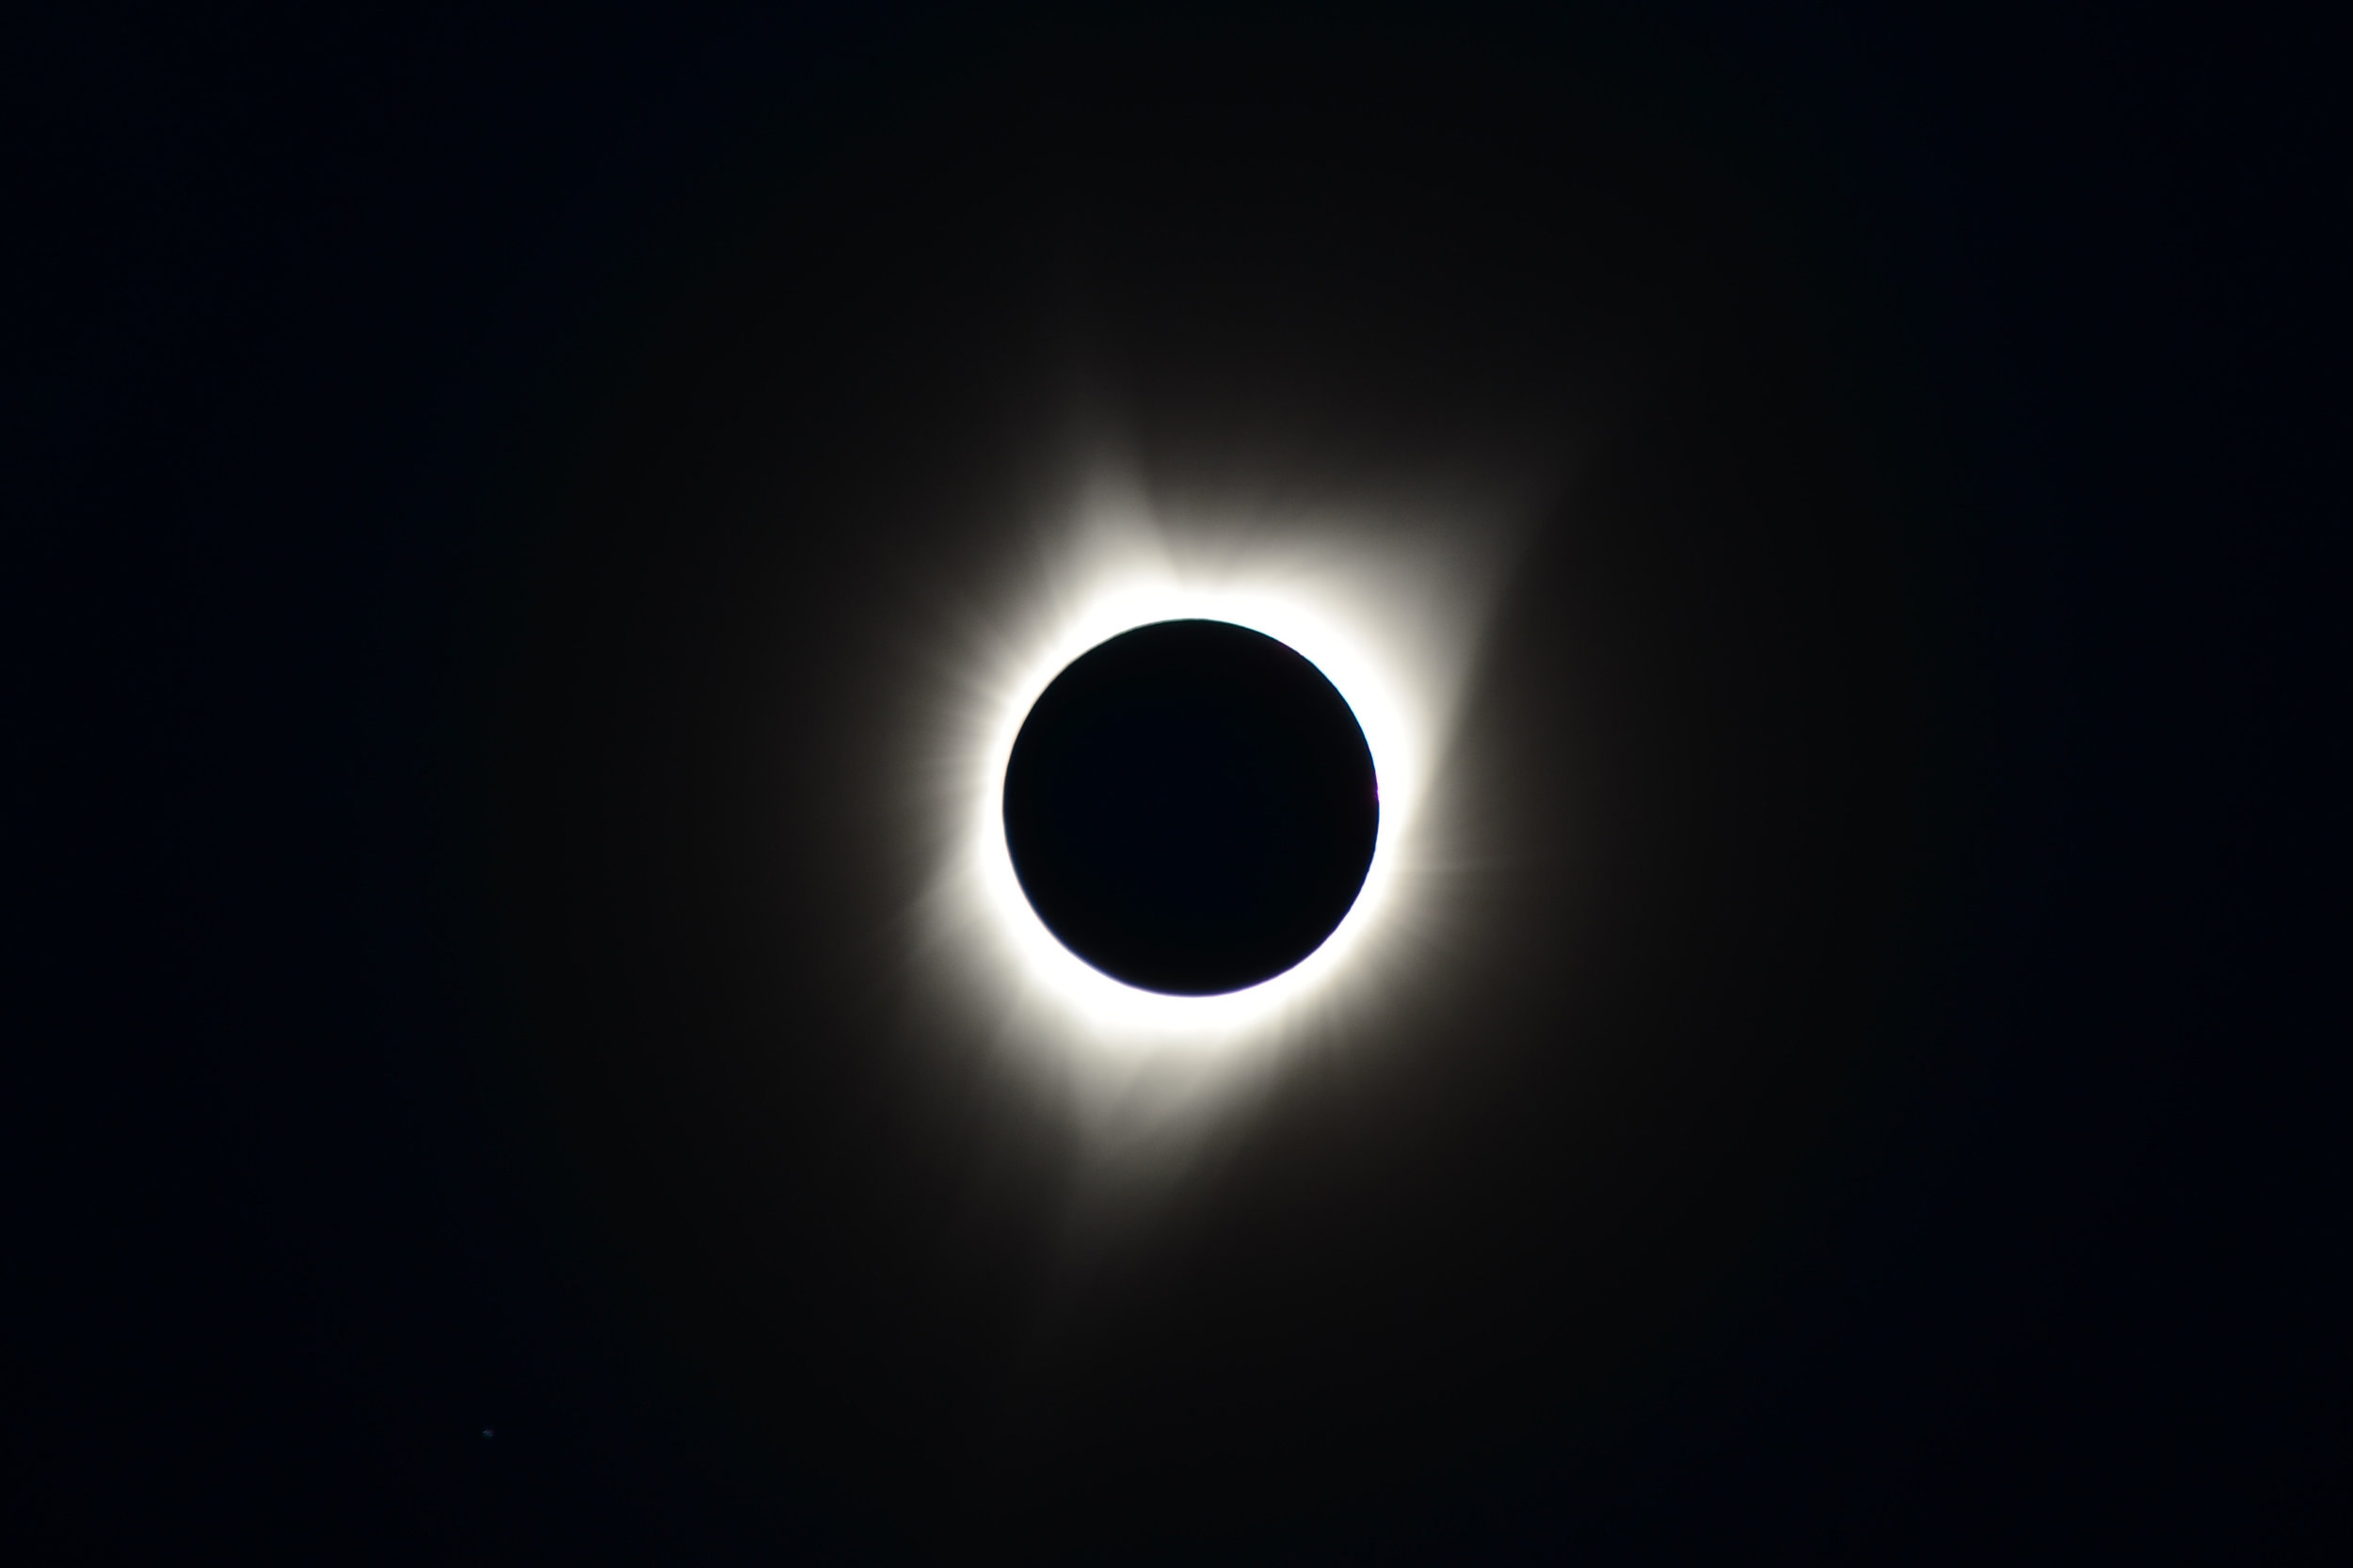 A photo of the total eclipse from Ochoco National Forest in Oregon. Photo © Jim Alan Smith.